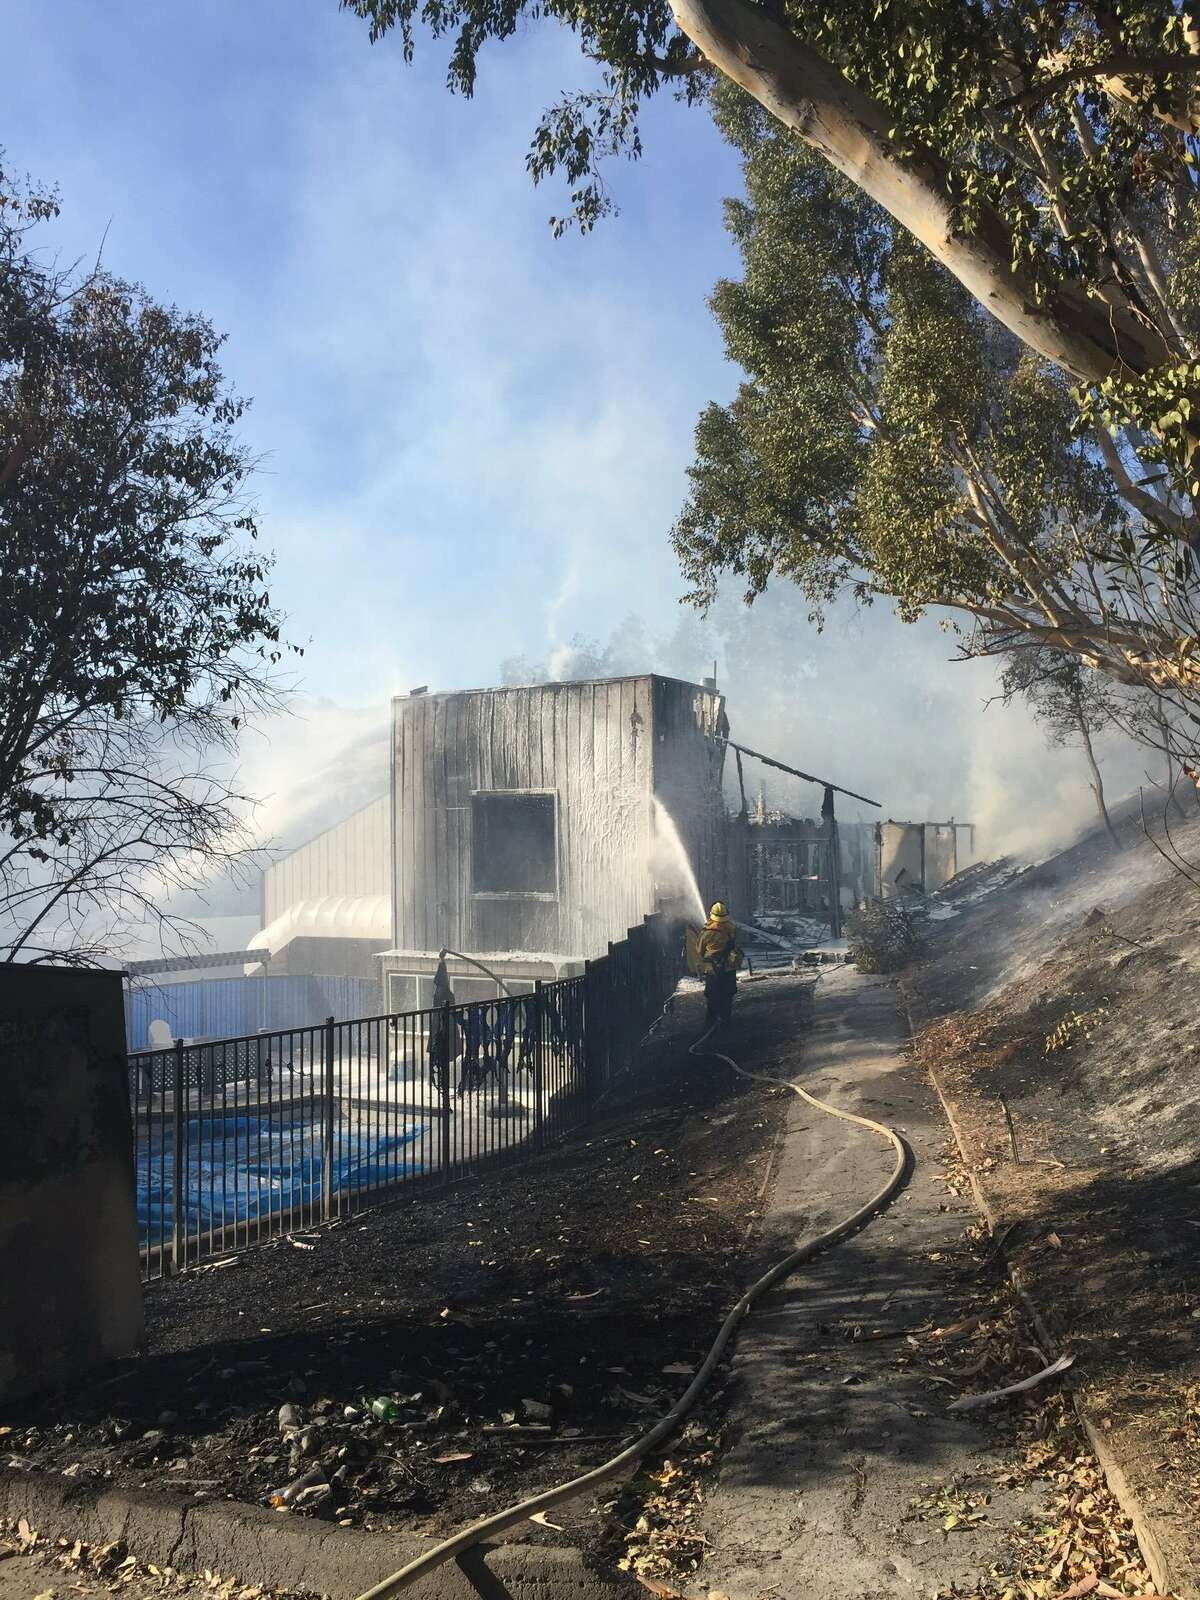 Photos show firefighters hosing down the damaged tennis club building.